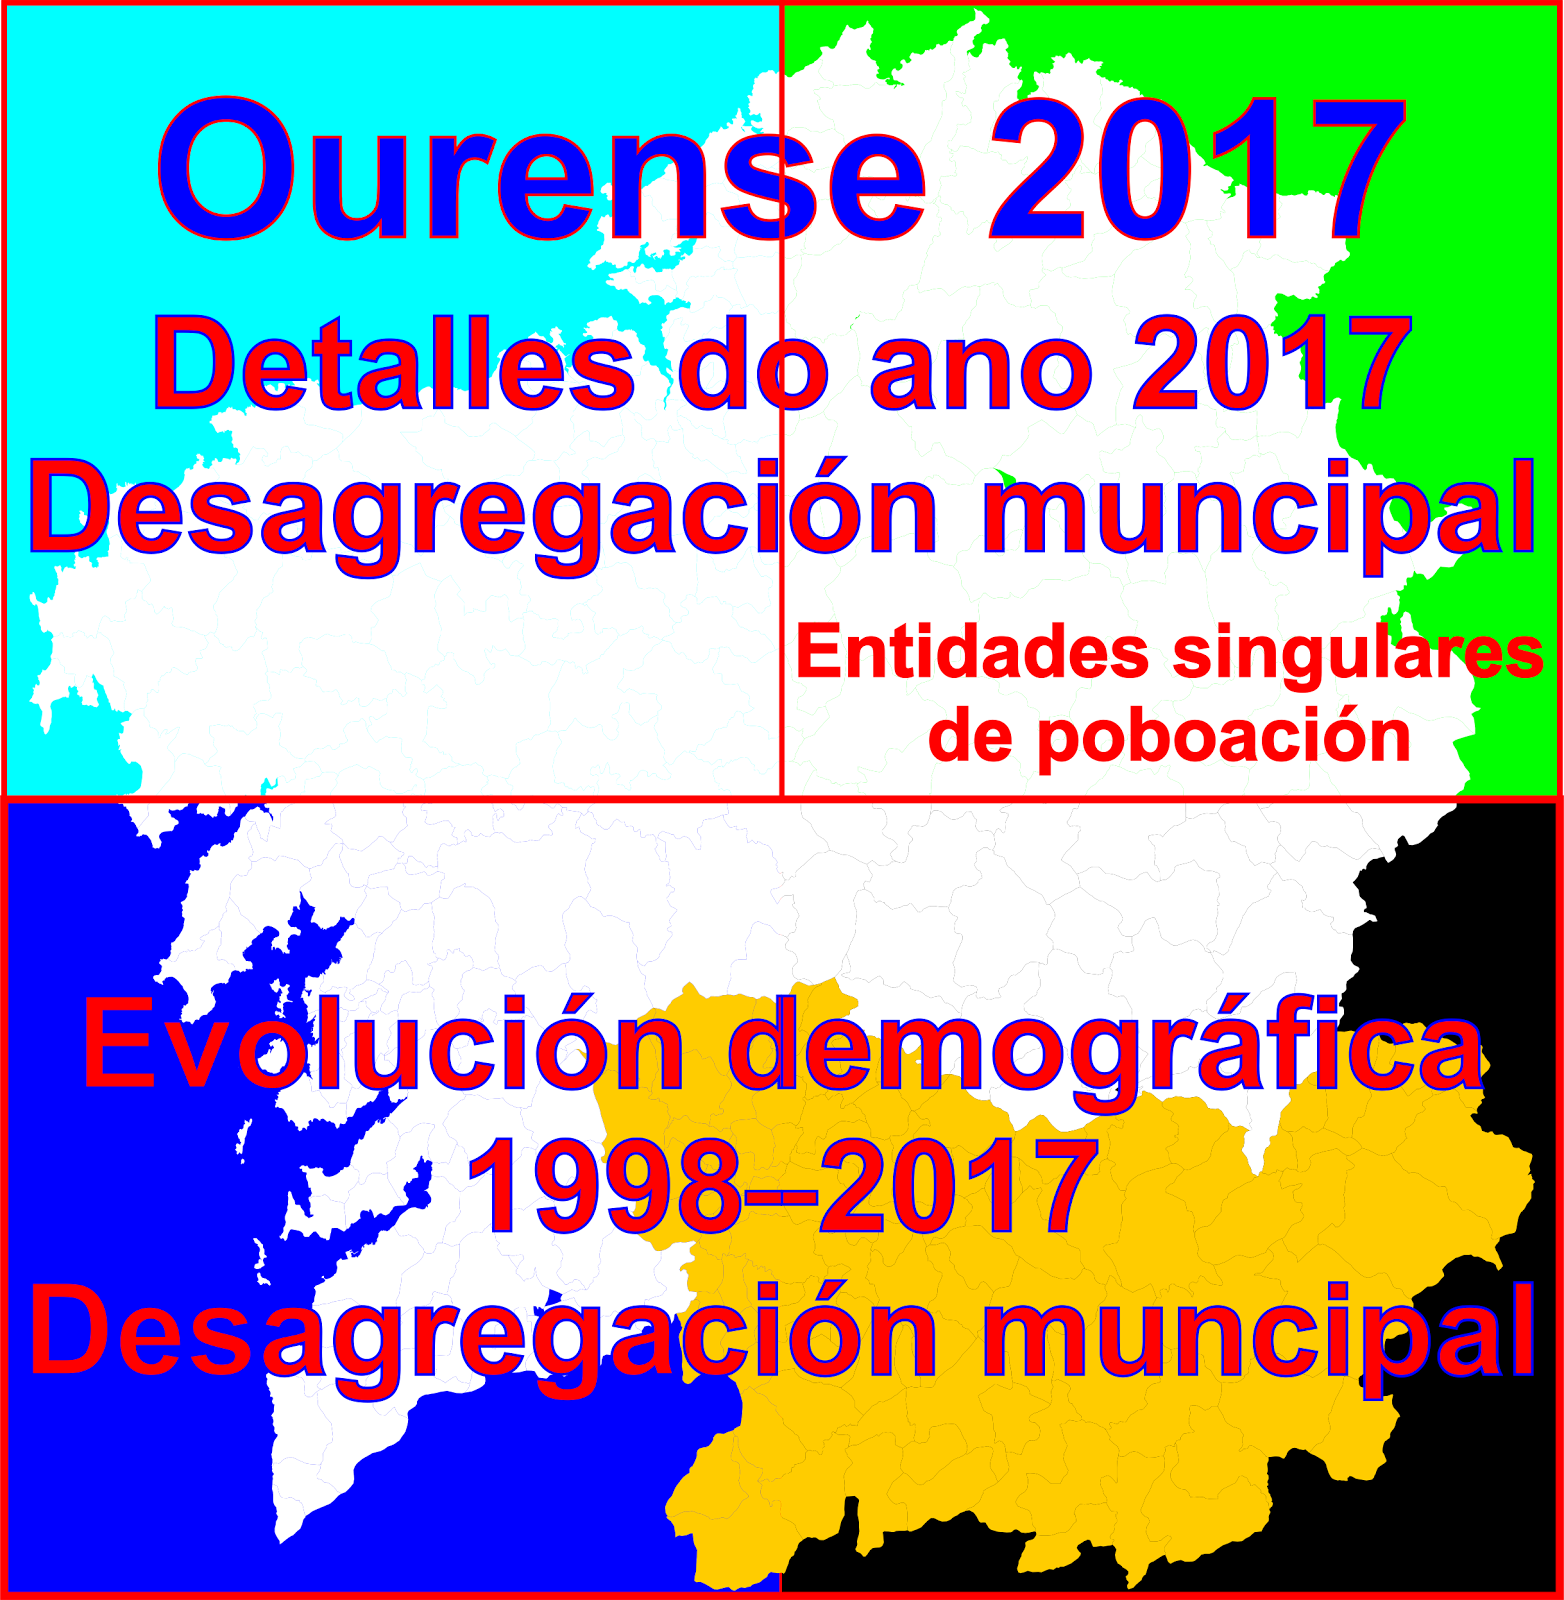 Ourense 2017